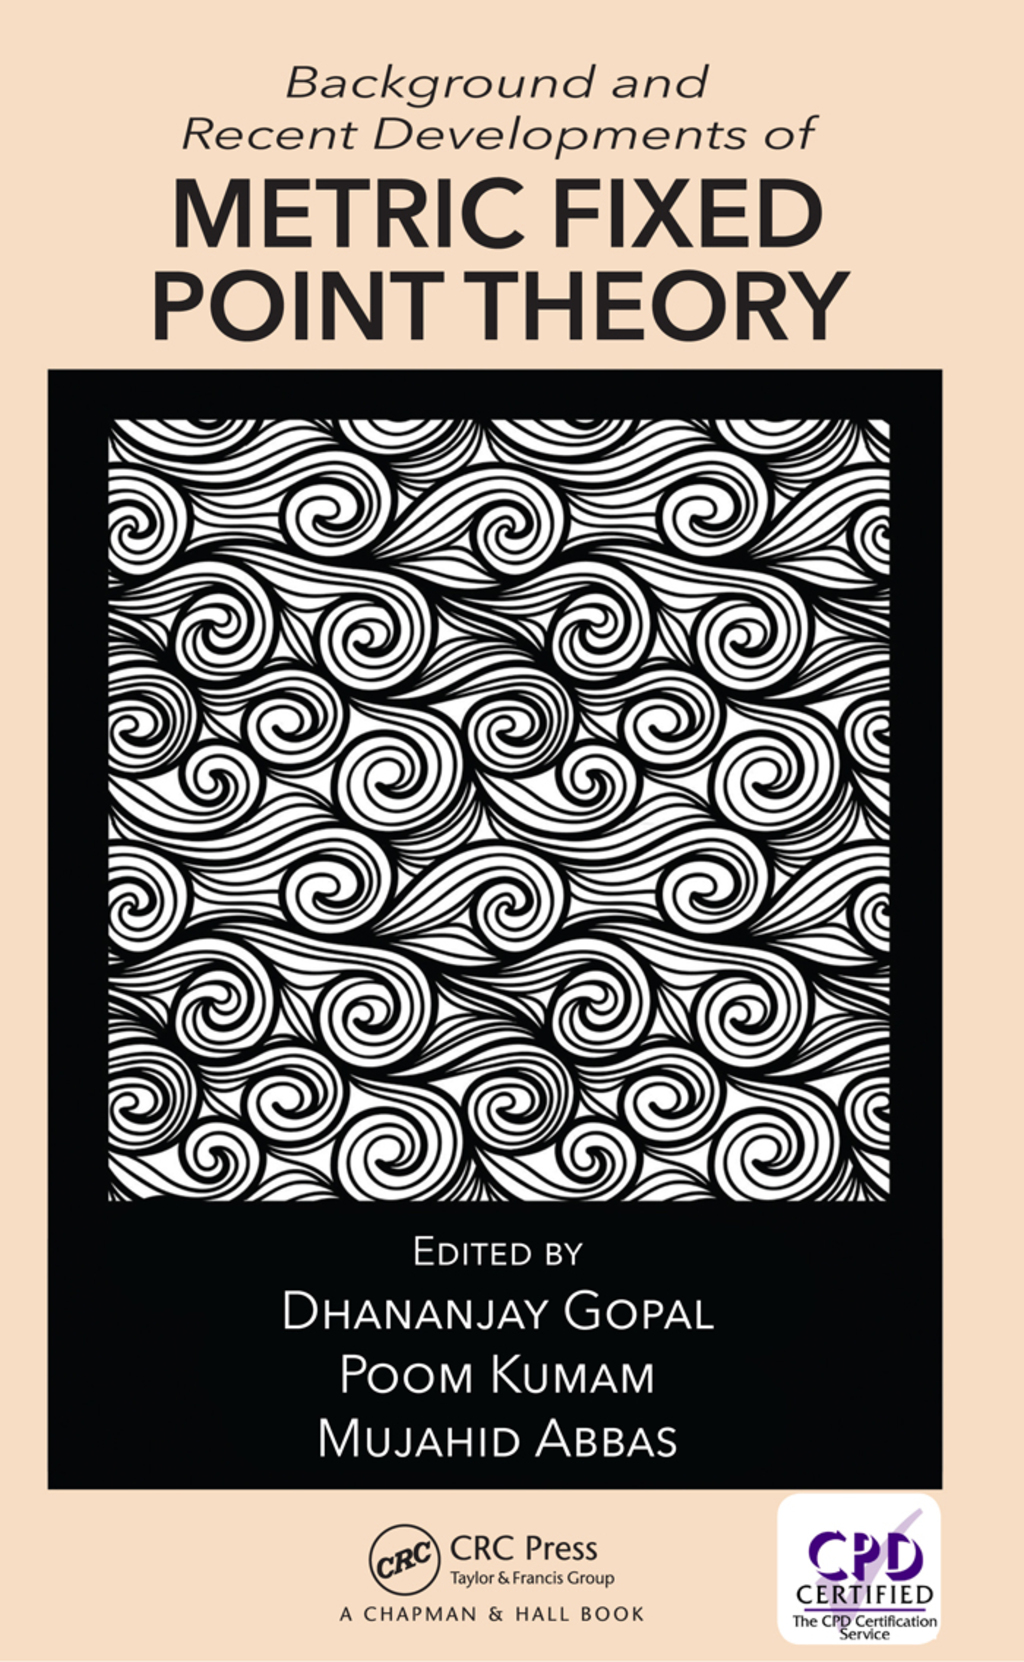 Background and Recent Developments of Metric Fixed Point Theory (eBook Rental)